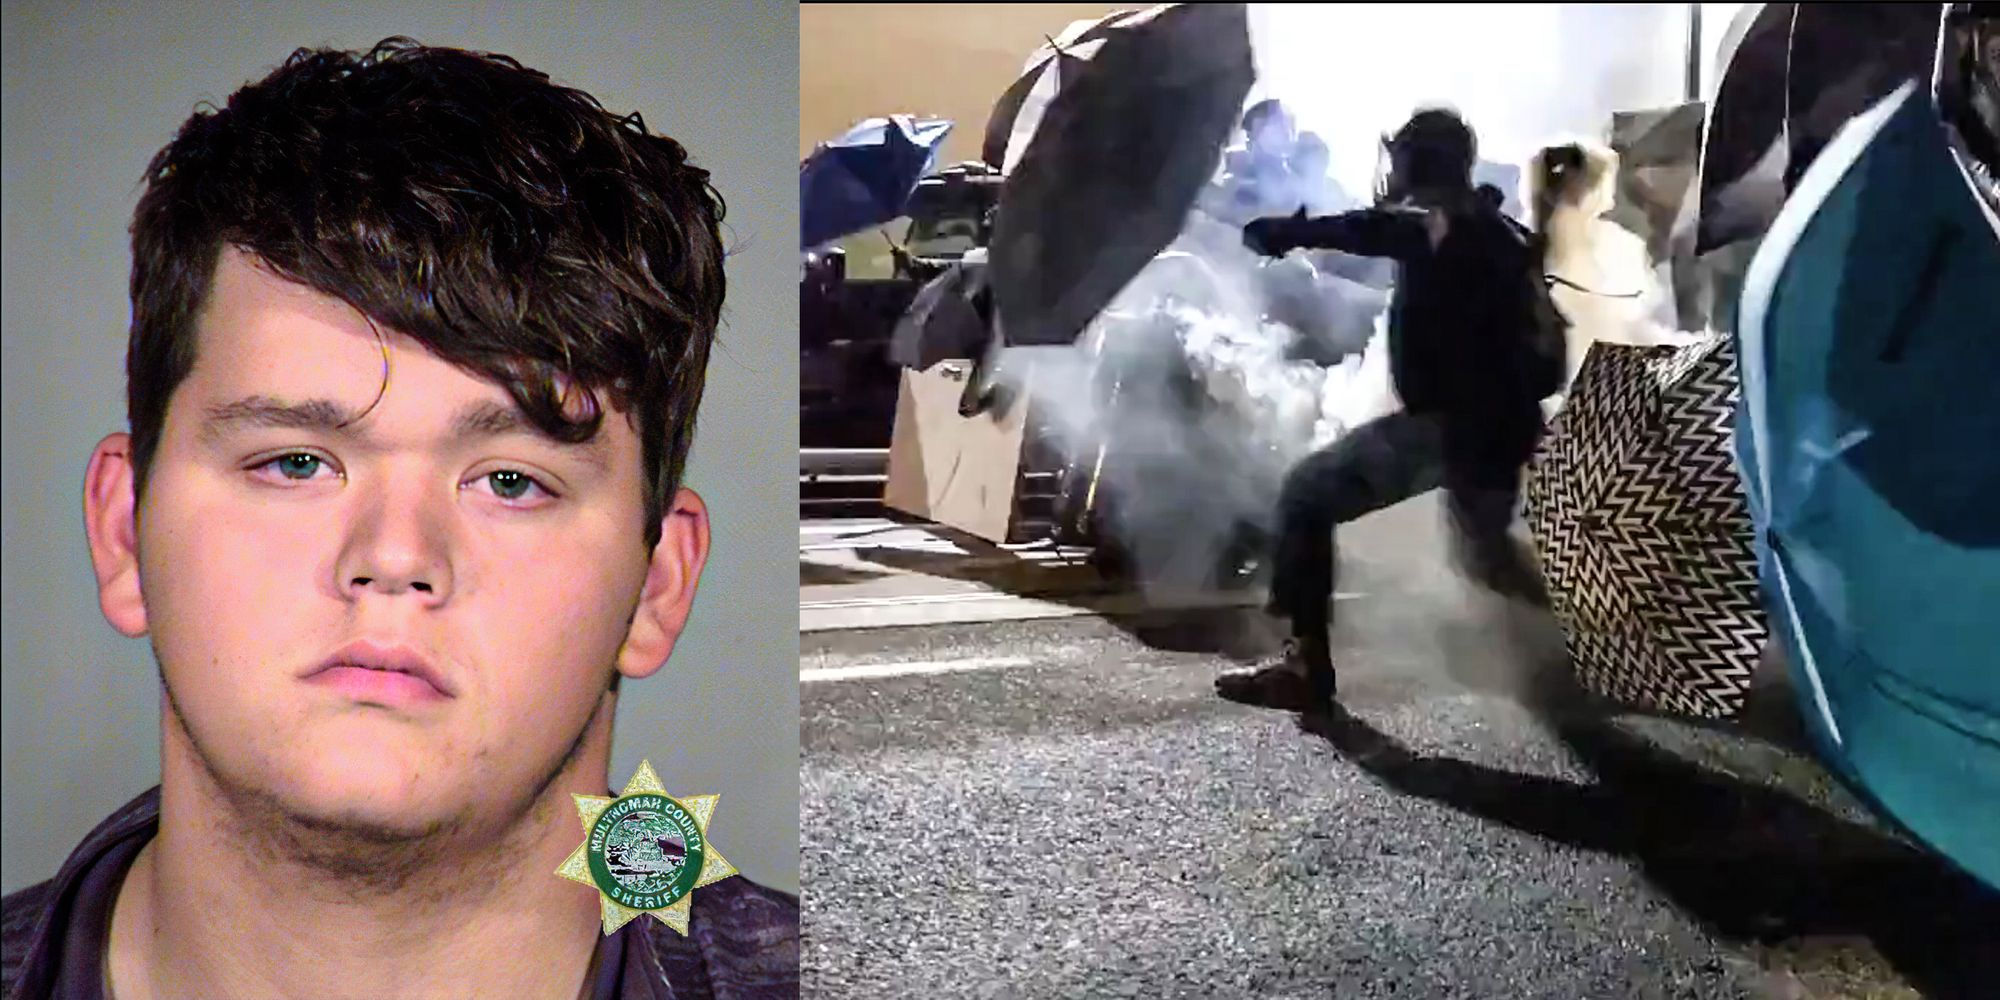 Illinois man arrested by feds in Portland came 'to wreak havoc' at riots, says prosecutor